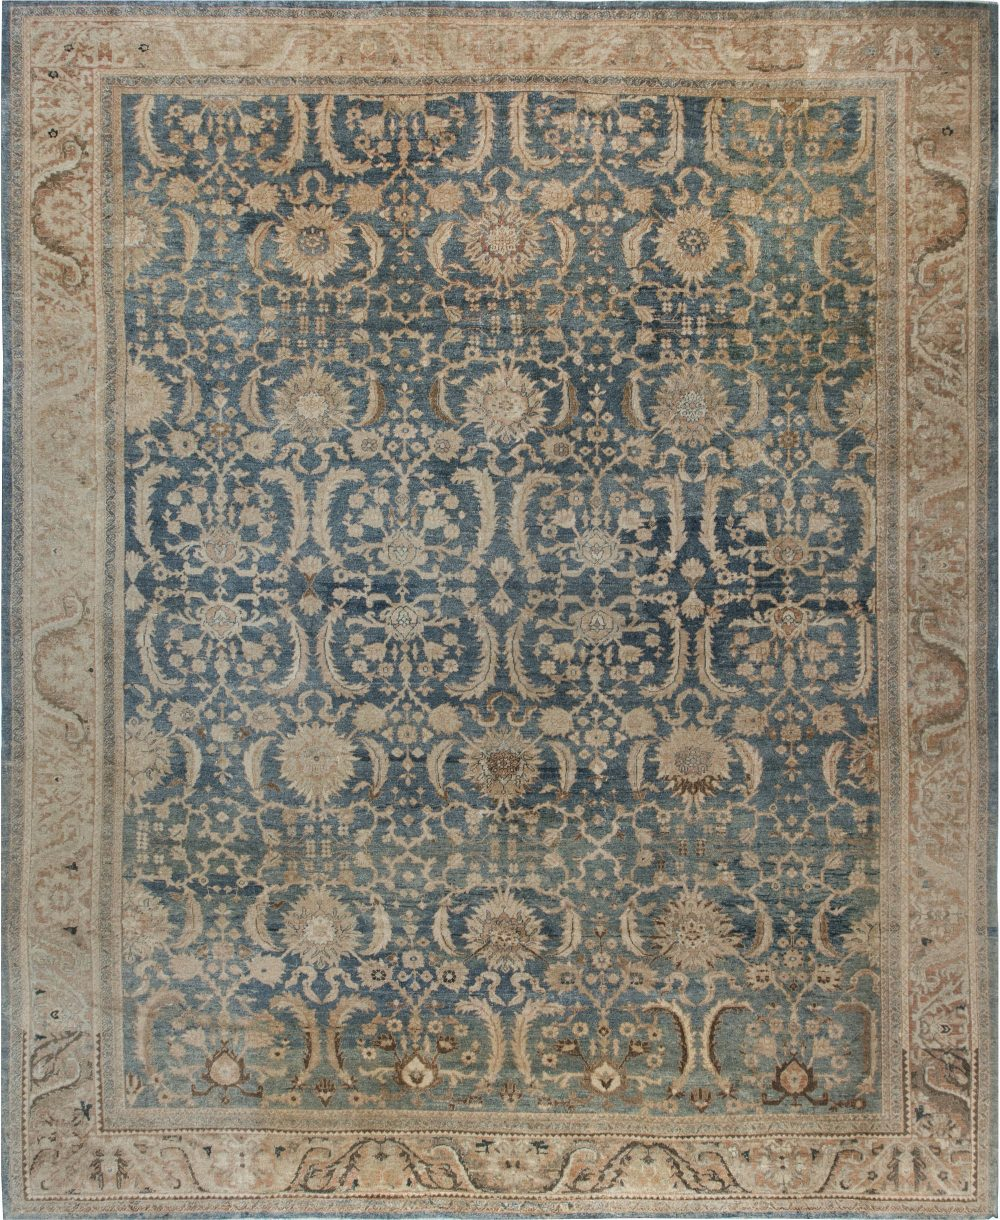 Antique Persian Indigo and Beige Handwoven Wool Sultanabad Rug BB6861